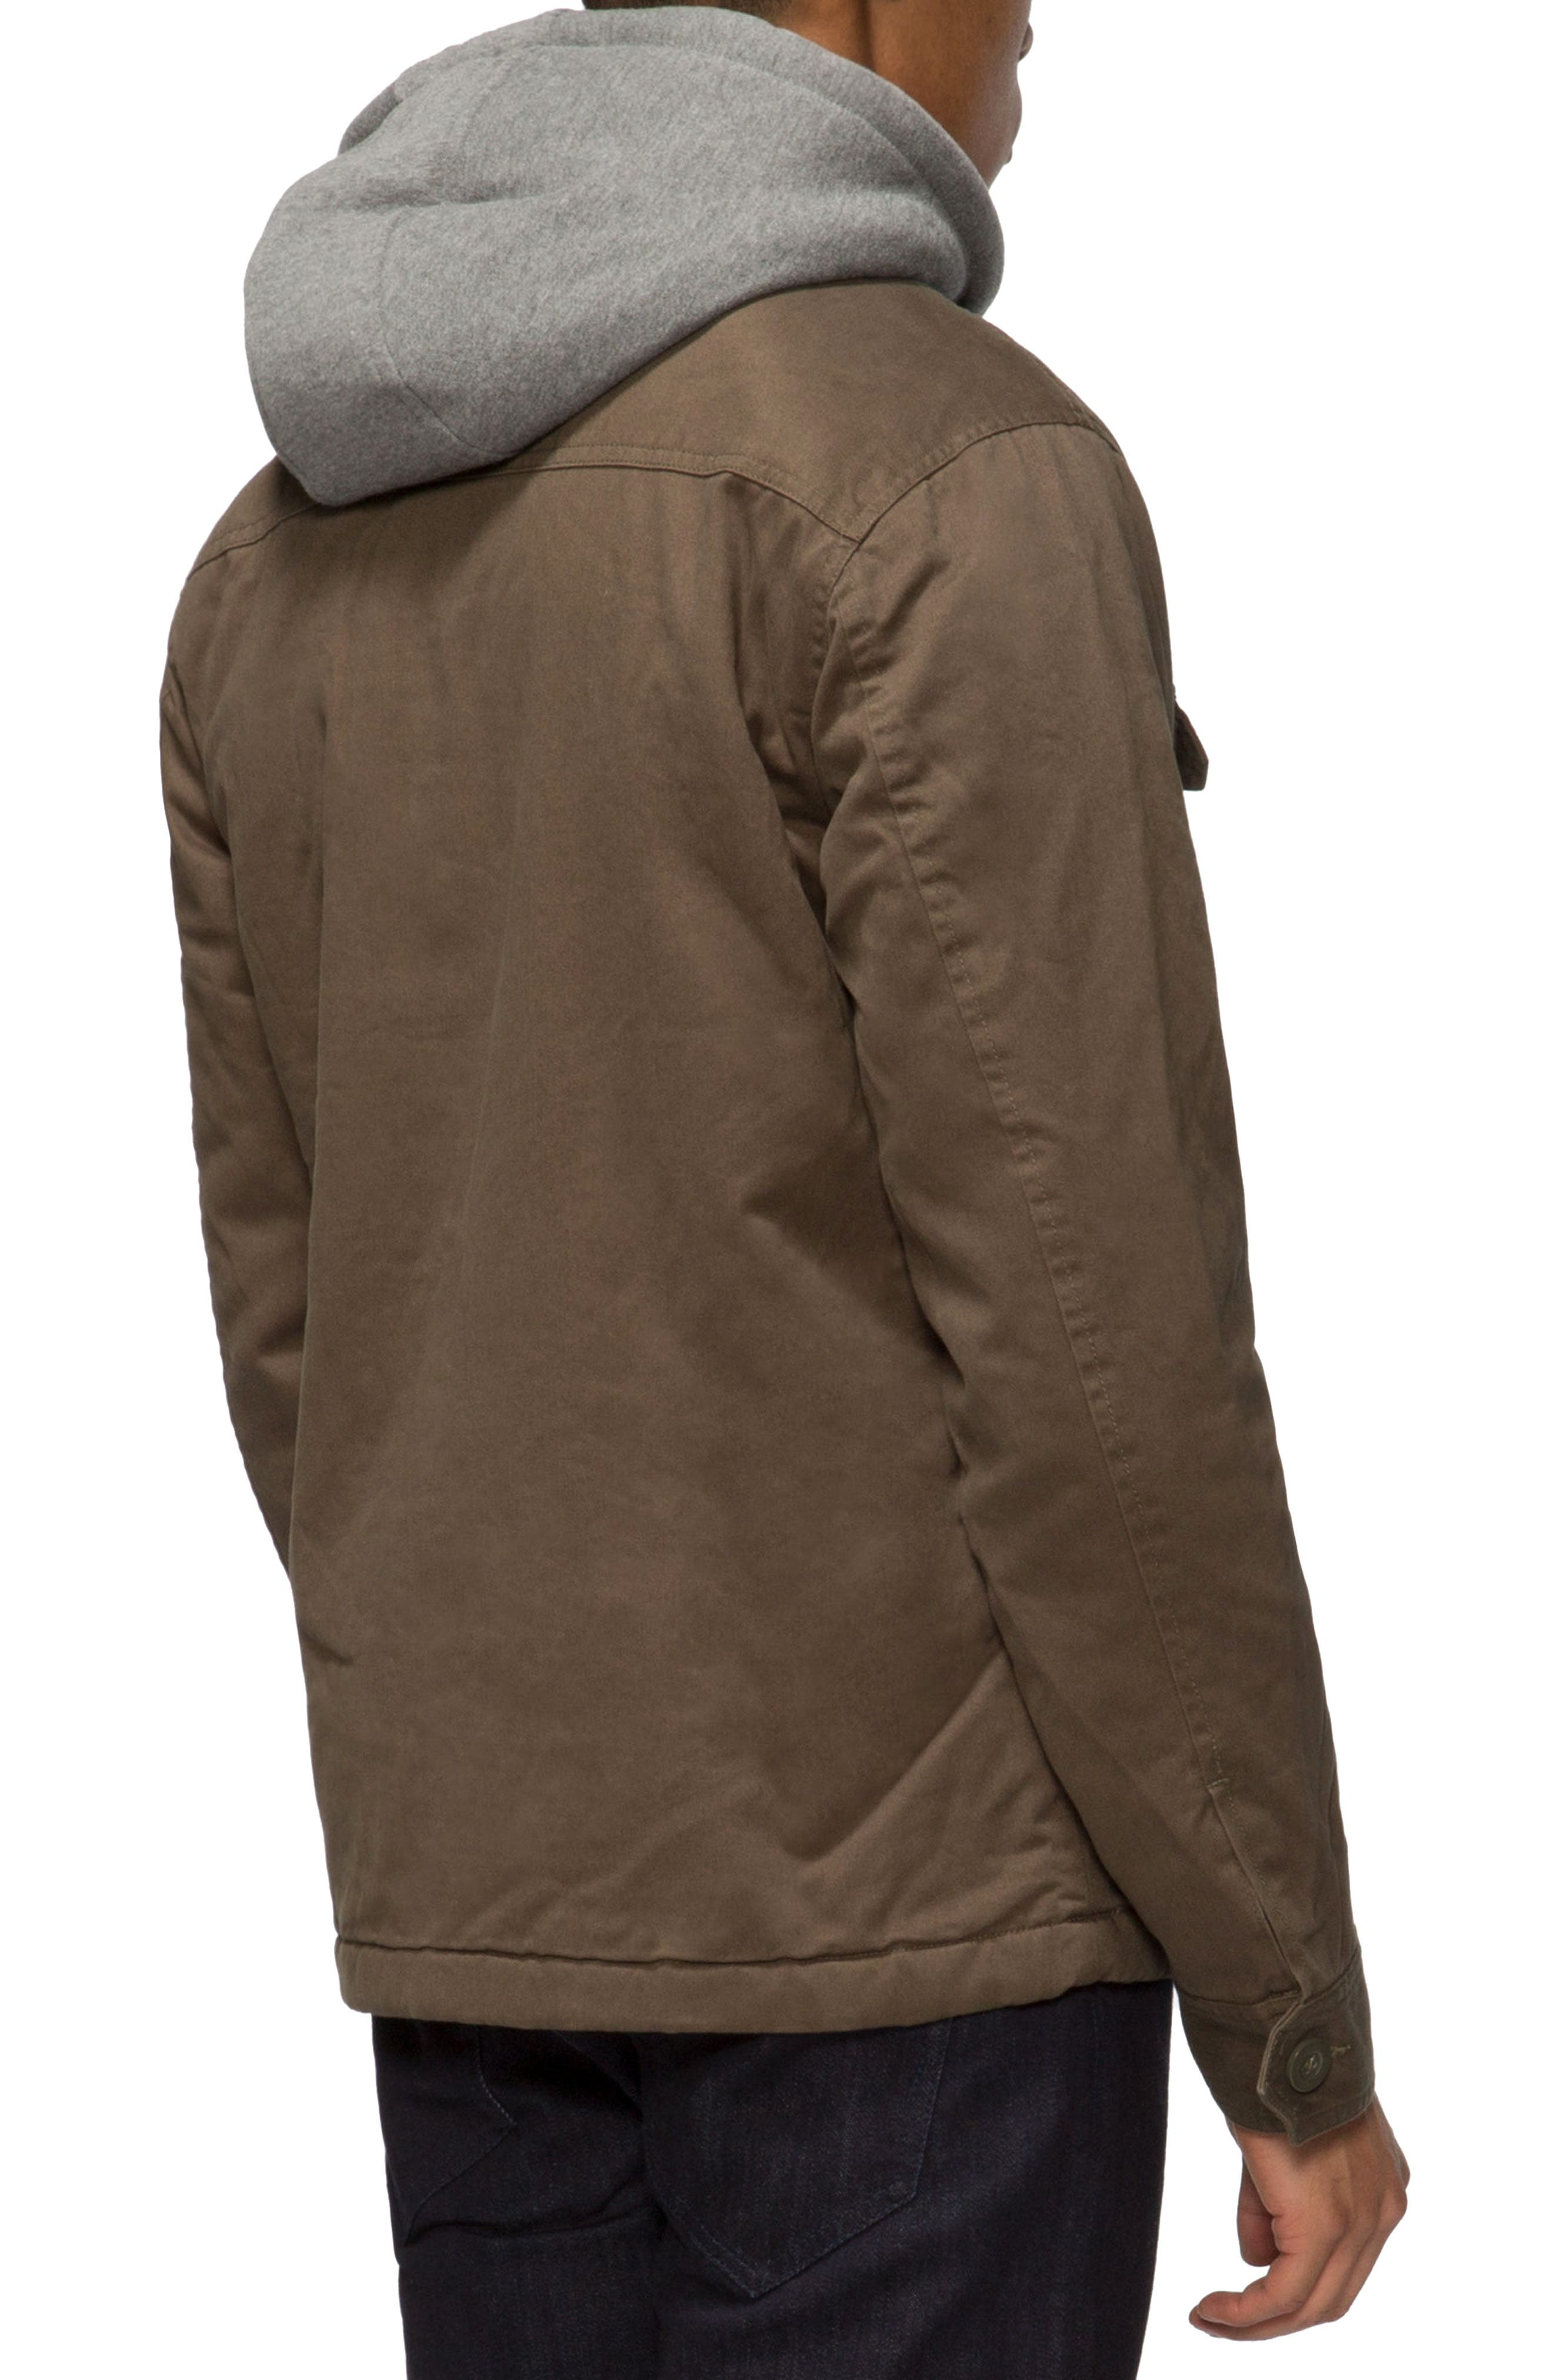 Droogs Plus Field Jacket with Detachable Hood,                             Alternate thumbnail 2, color,                             304